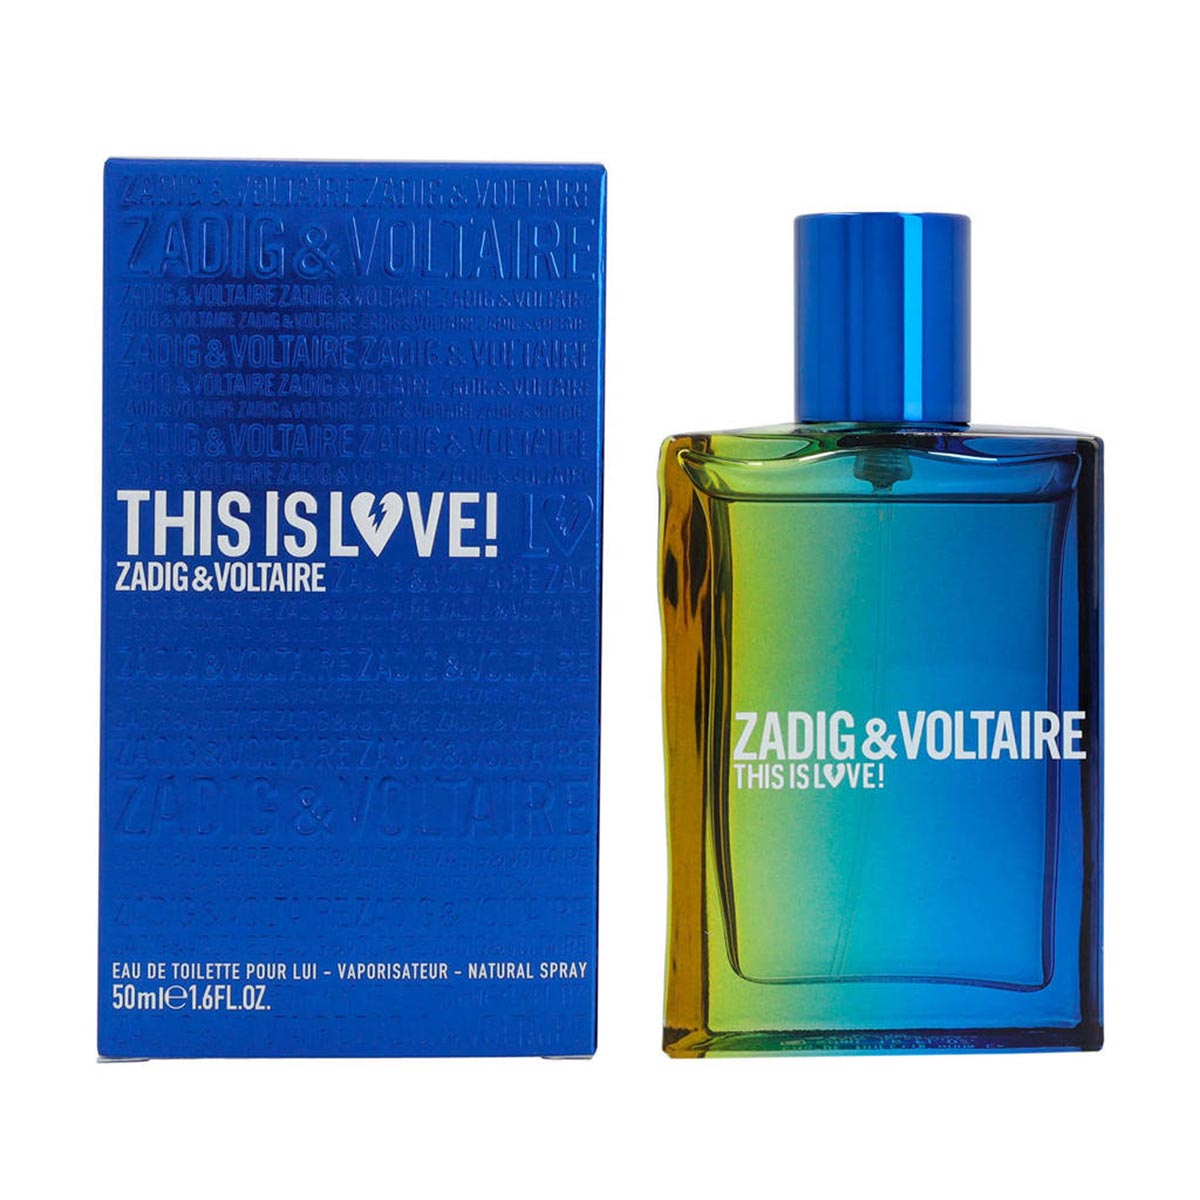 Zadig voltaire this is love him edt 50vp